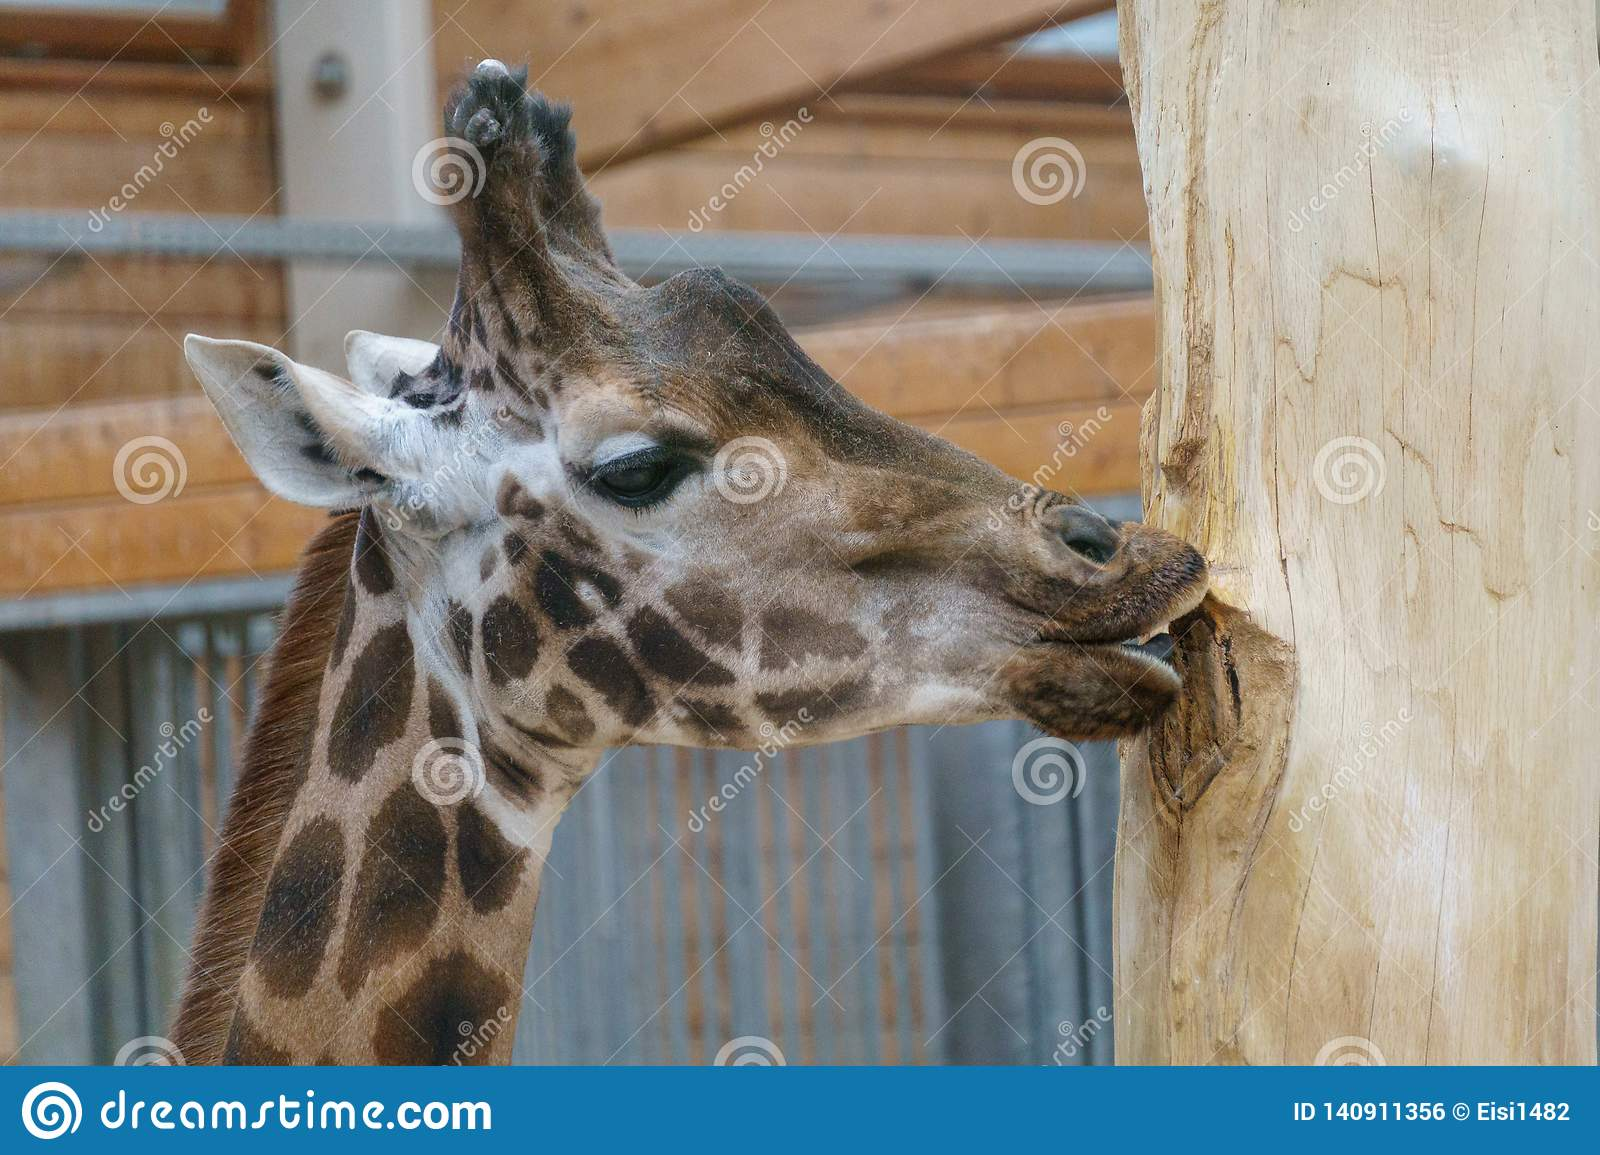 Giraffe chewing and licking at a tree